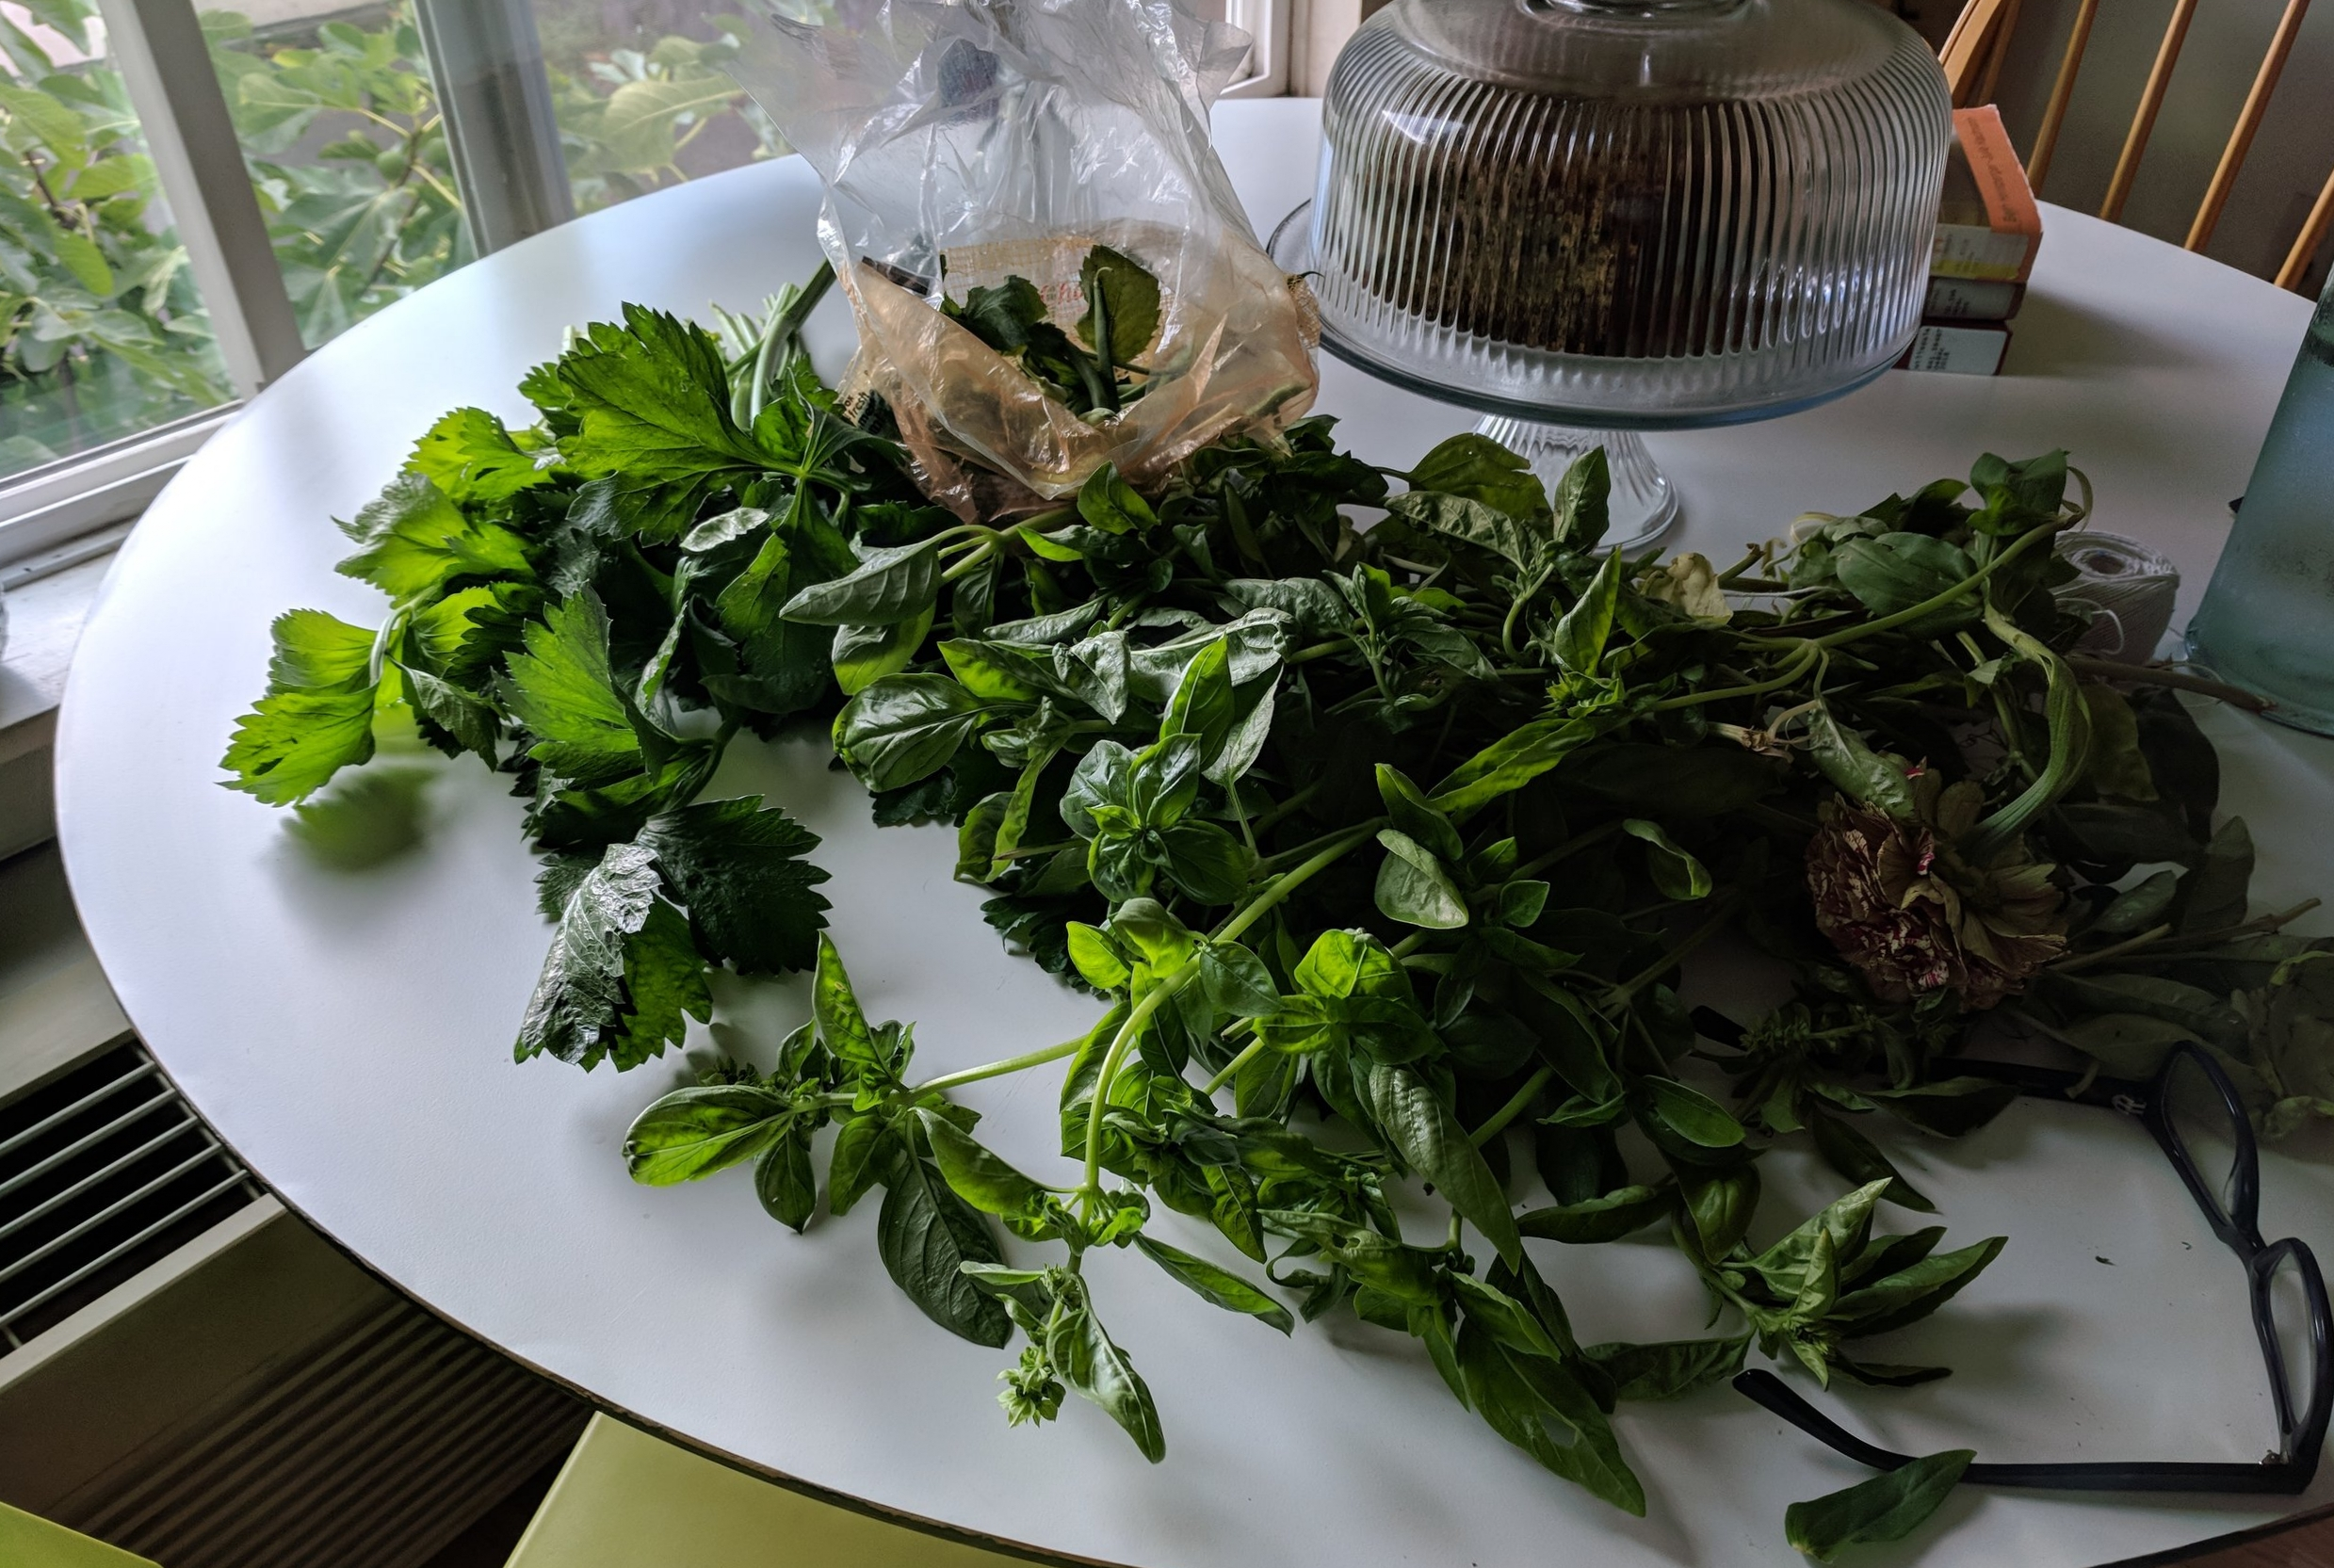 The more realistic basil situation, I mean, harvest, a few days later